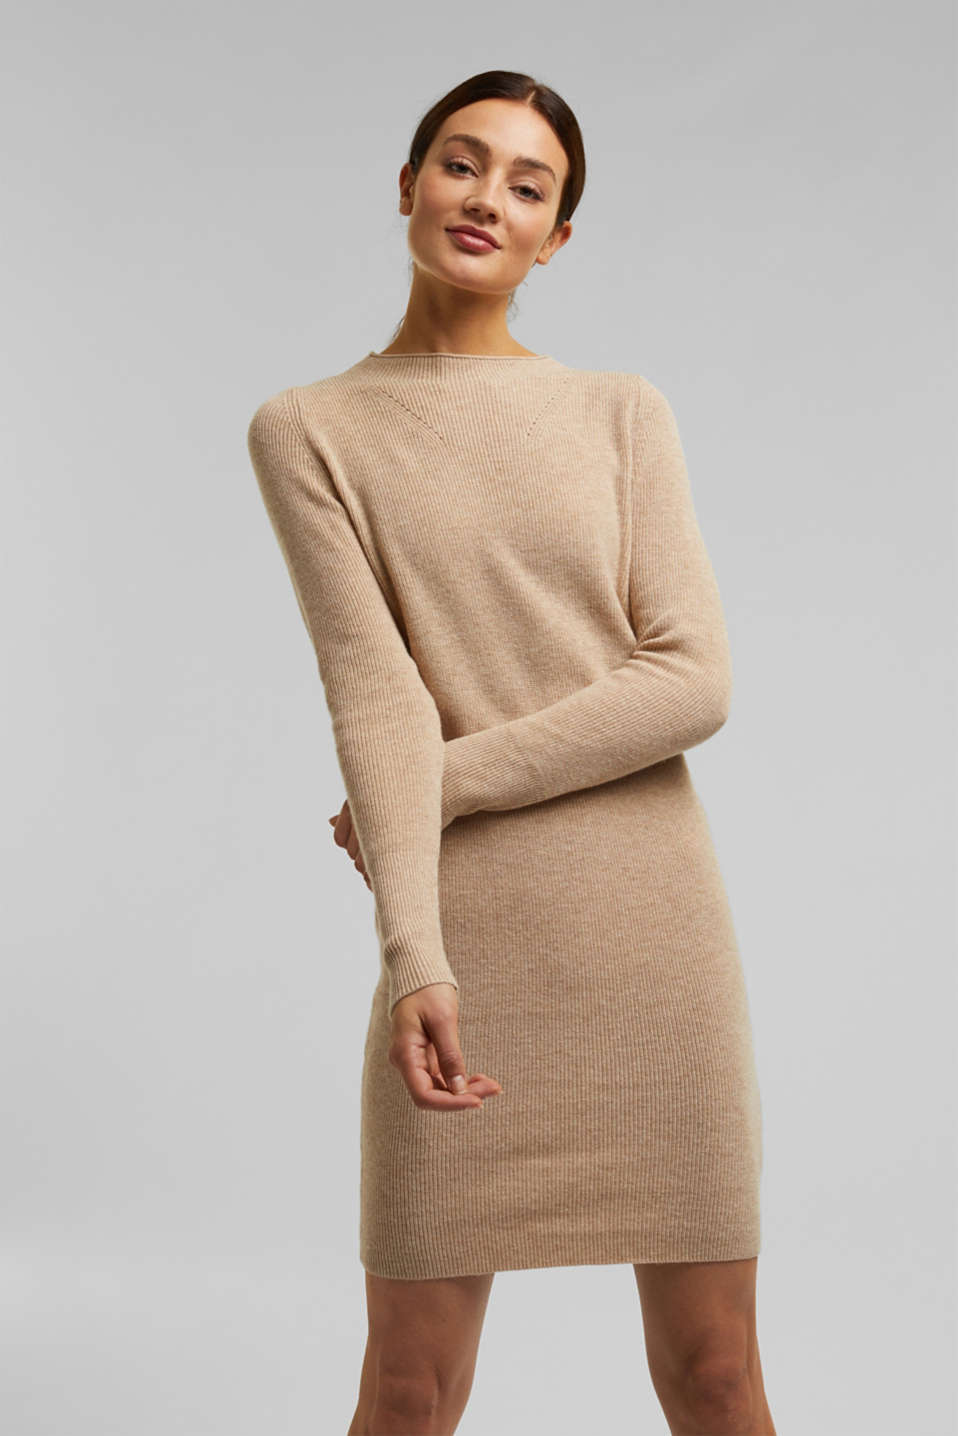 Esprit - knit dress